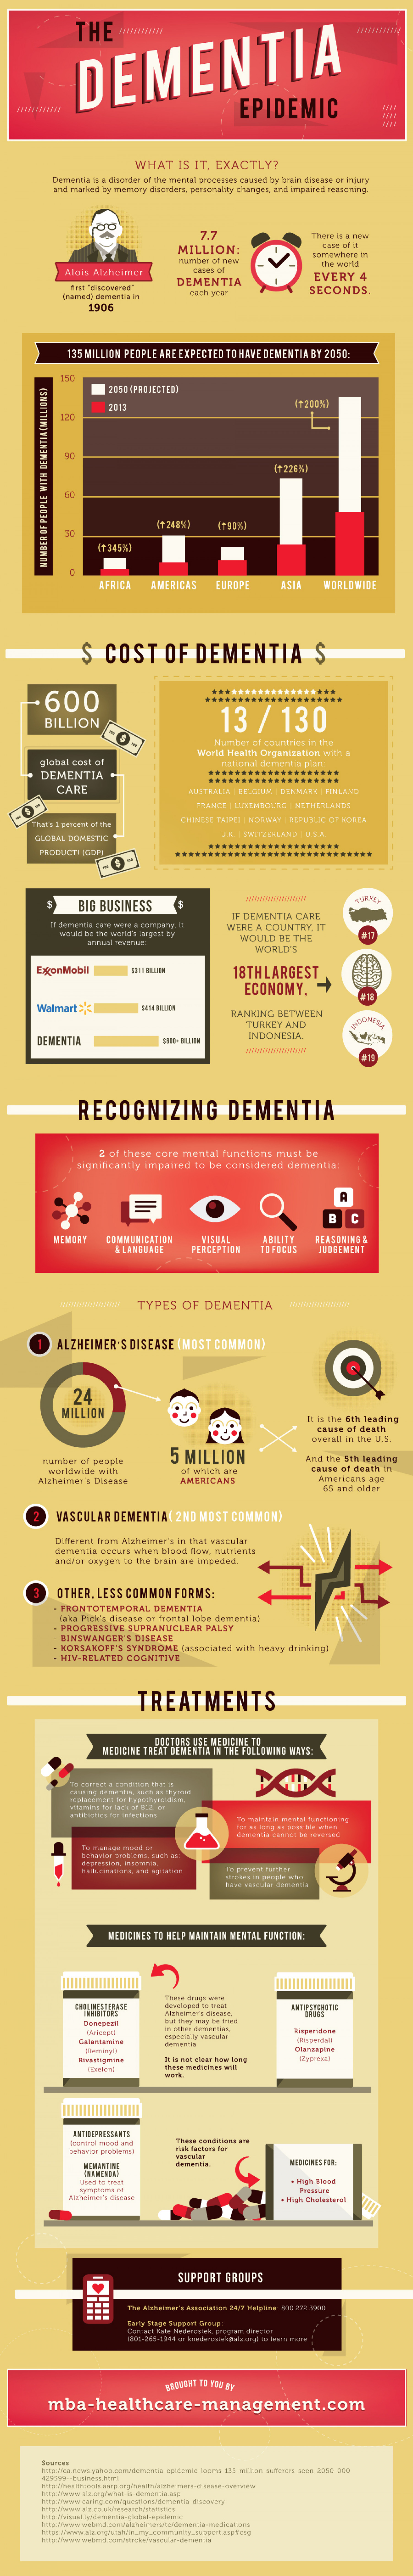 The Dementia Epidemic Infographic